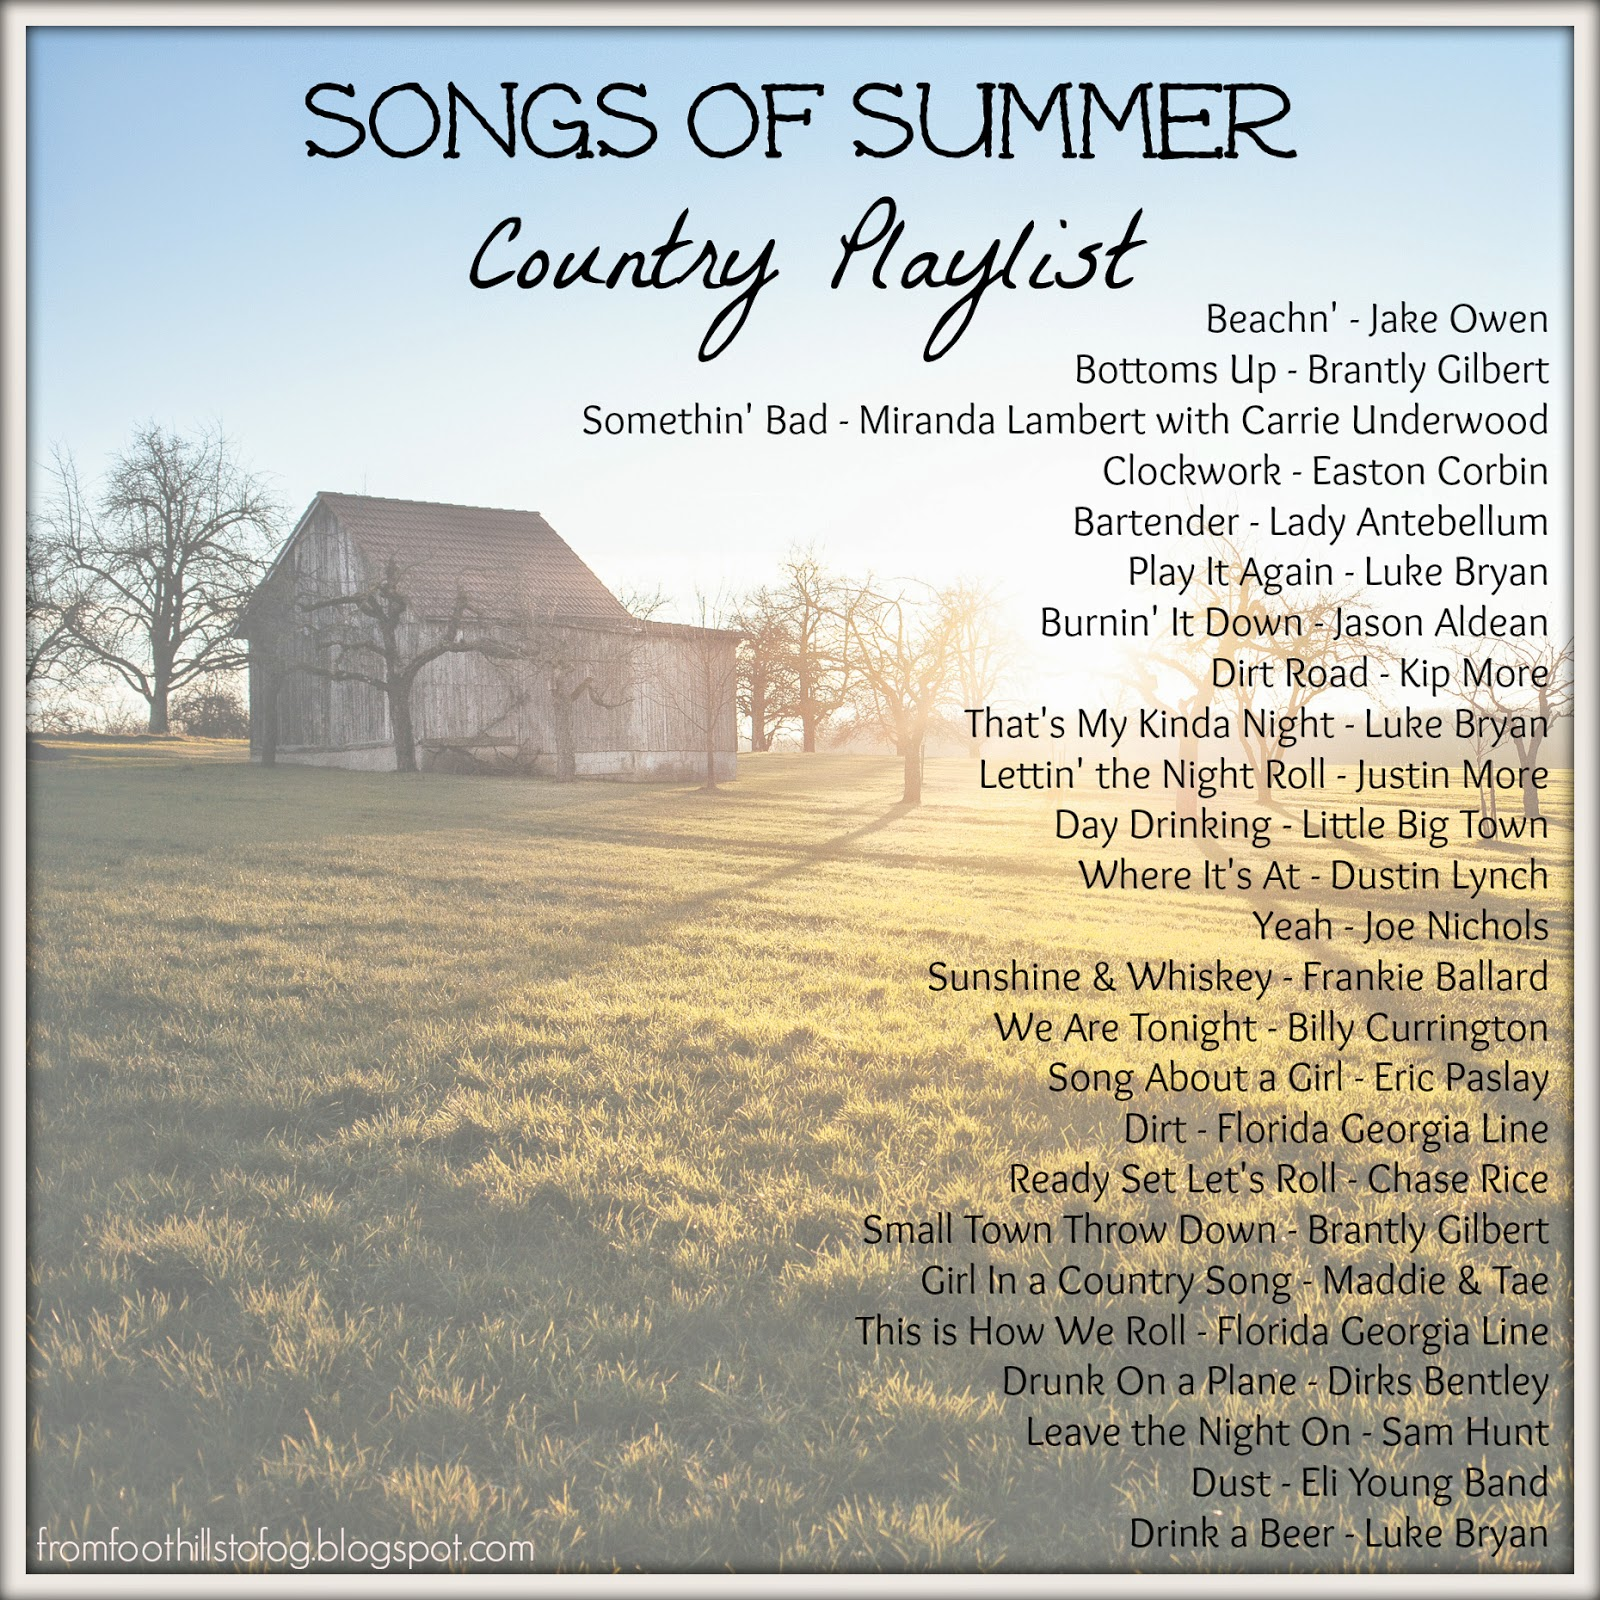 Quotes about Summer songs (69 quotes)